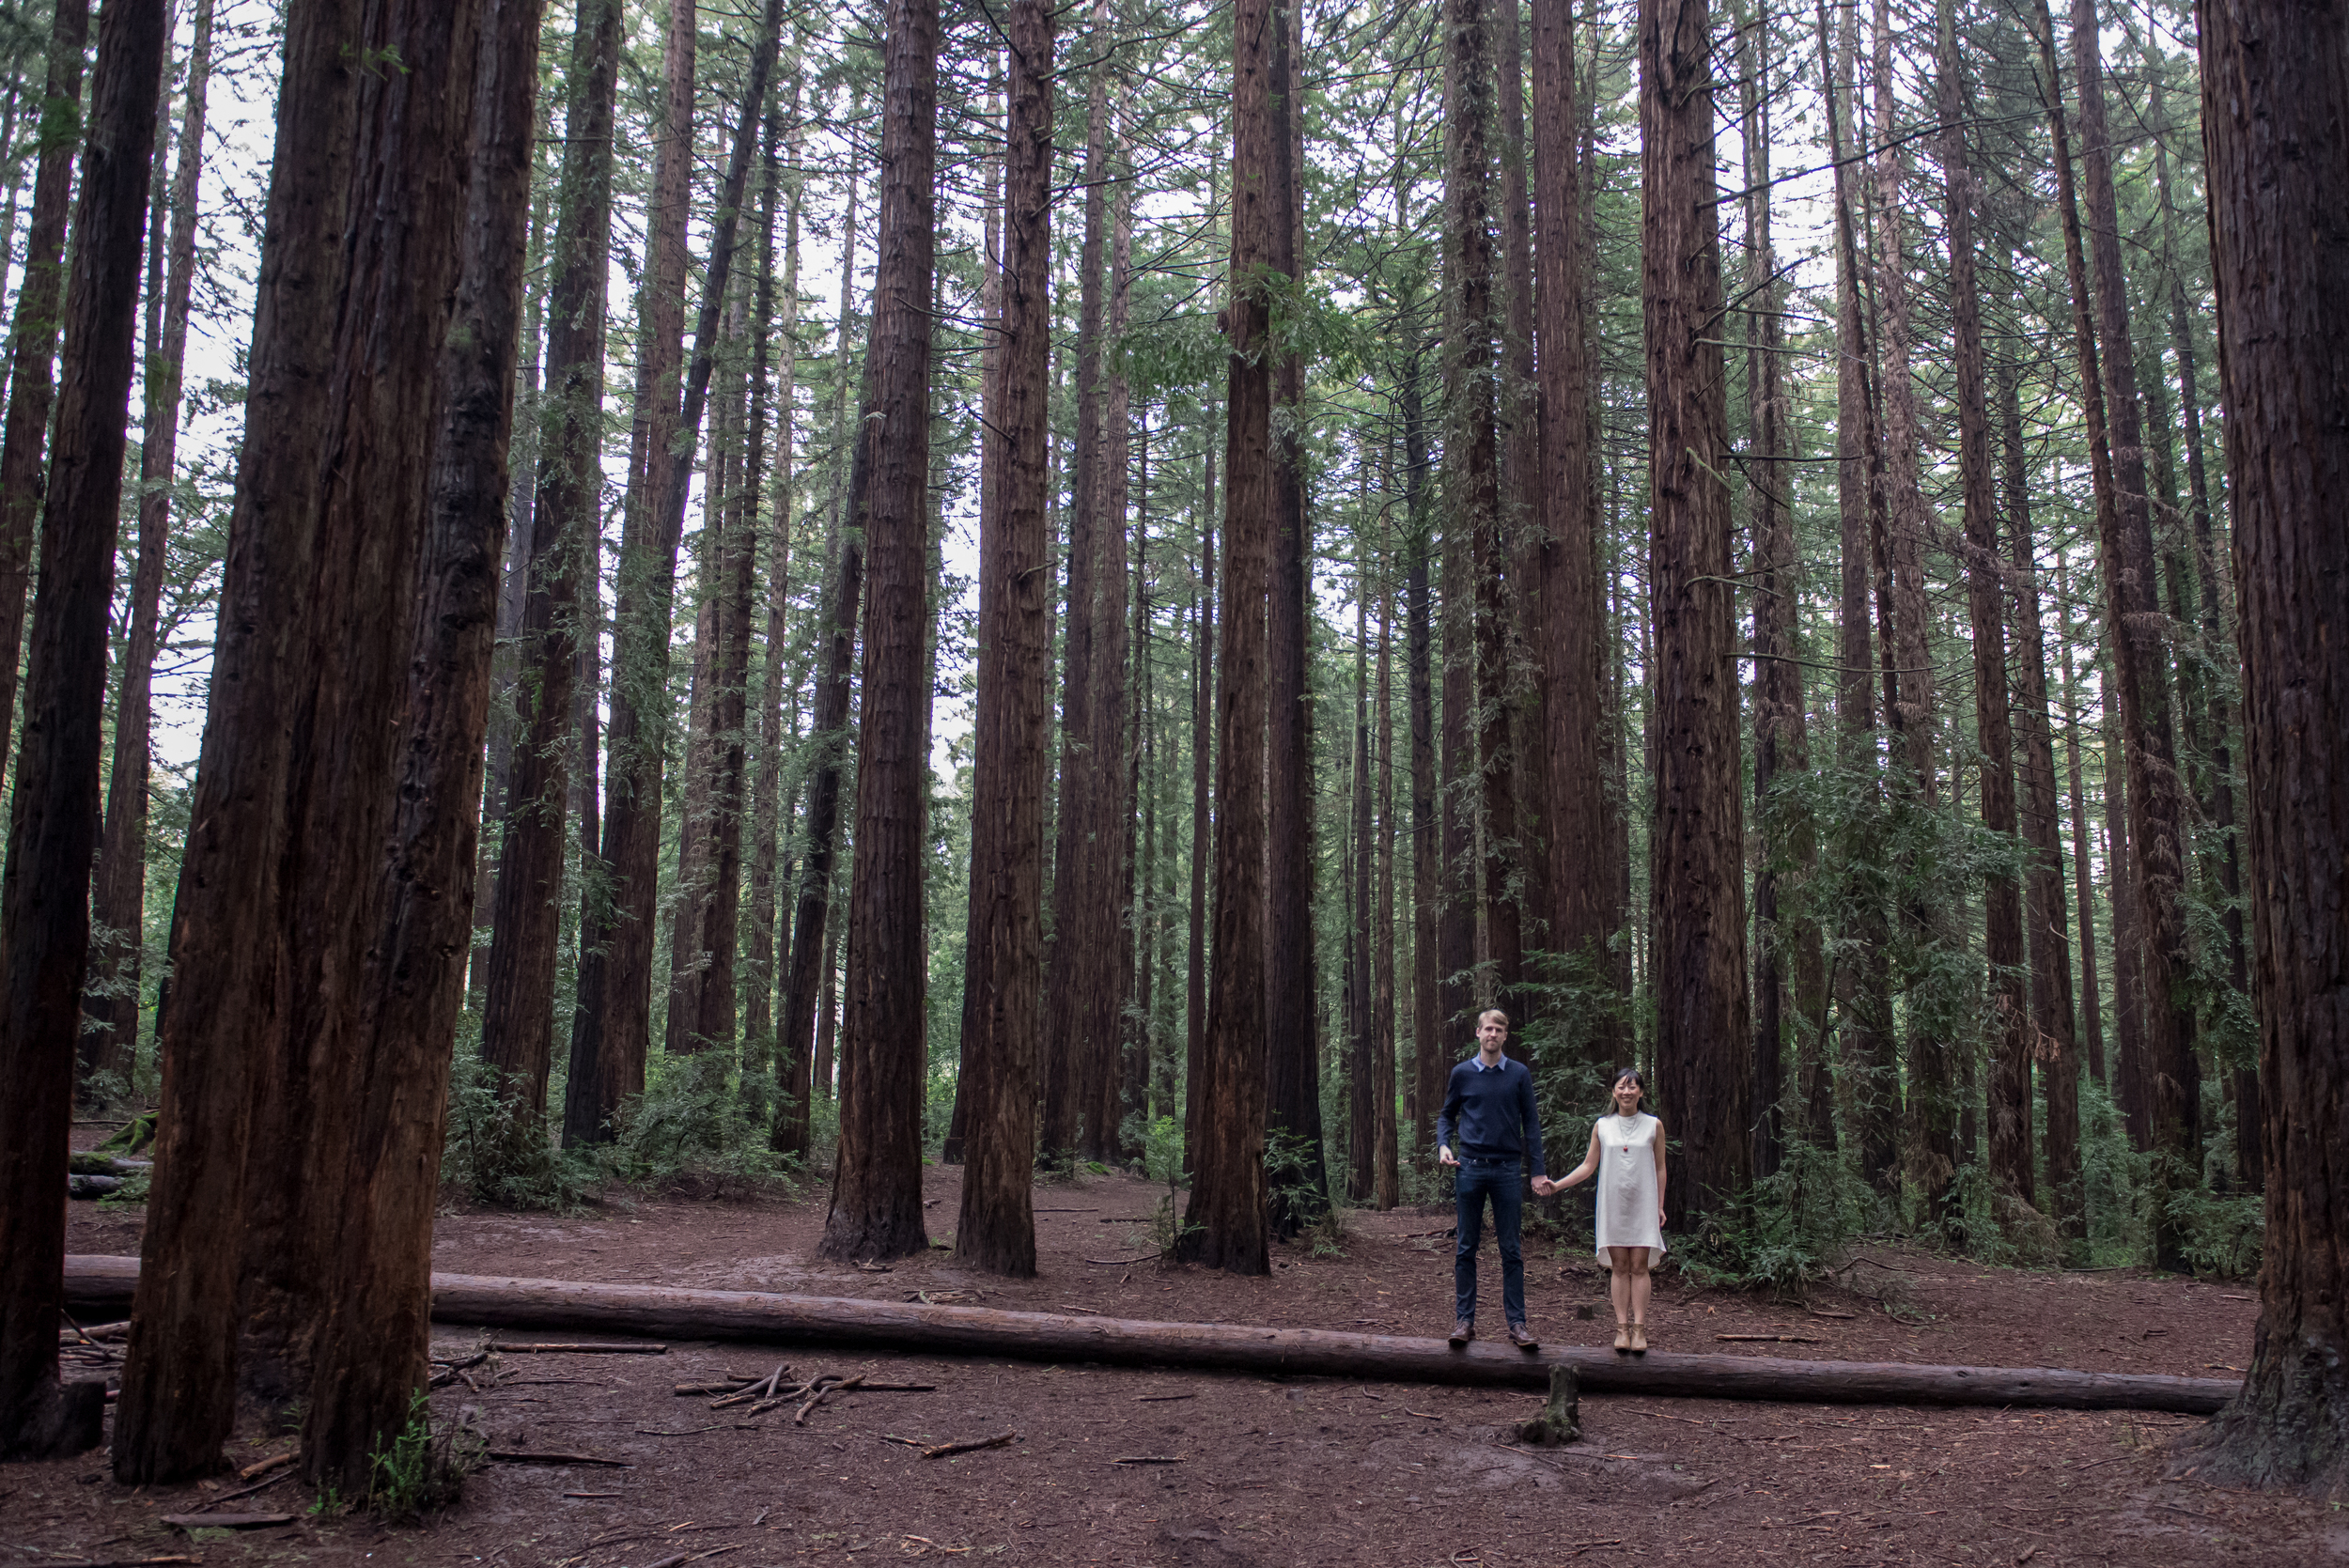 oakland-museum-redwood-forest-engagement-vc13.jpg